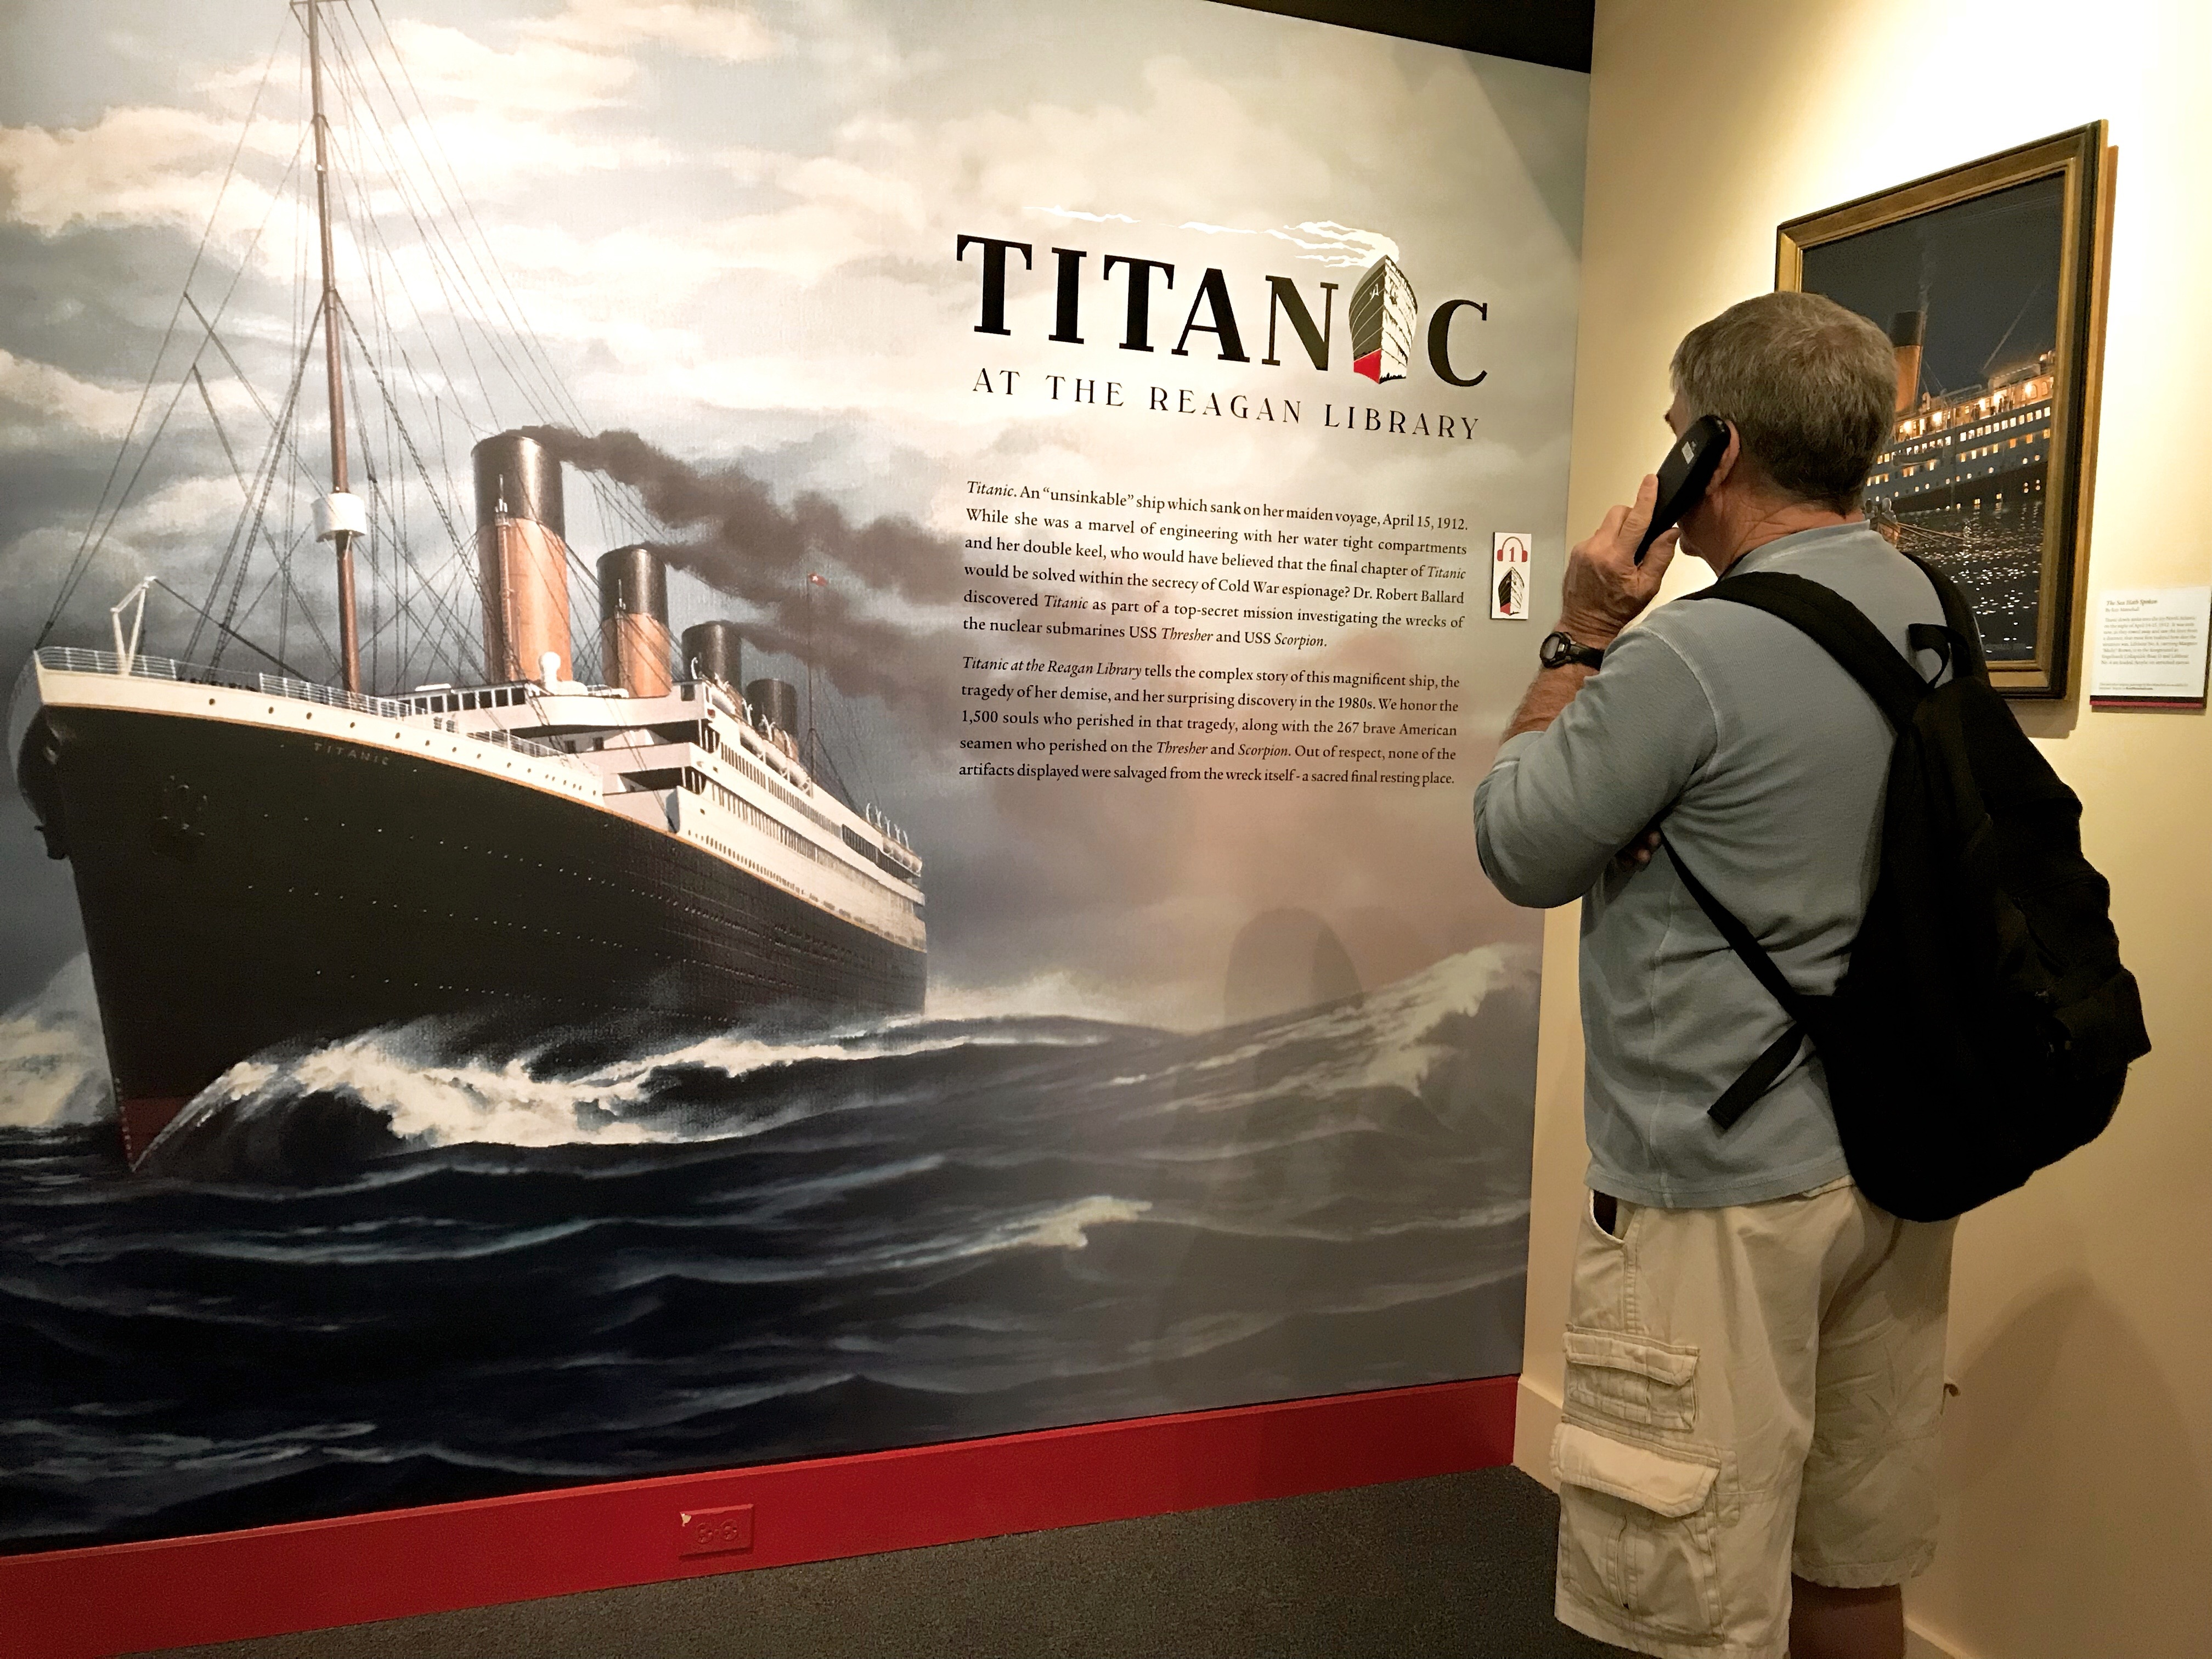 Reagan Library Titanic Exhibit